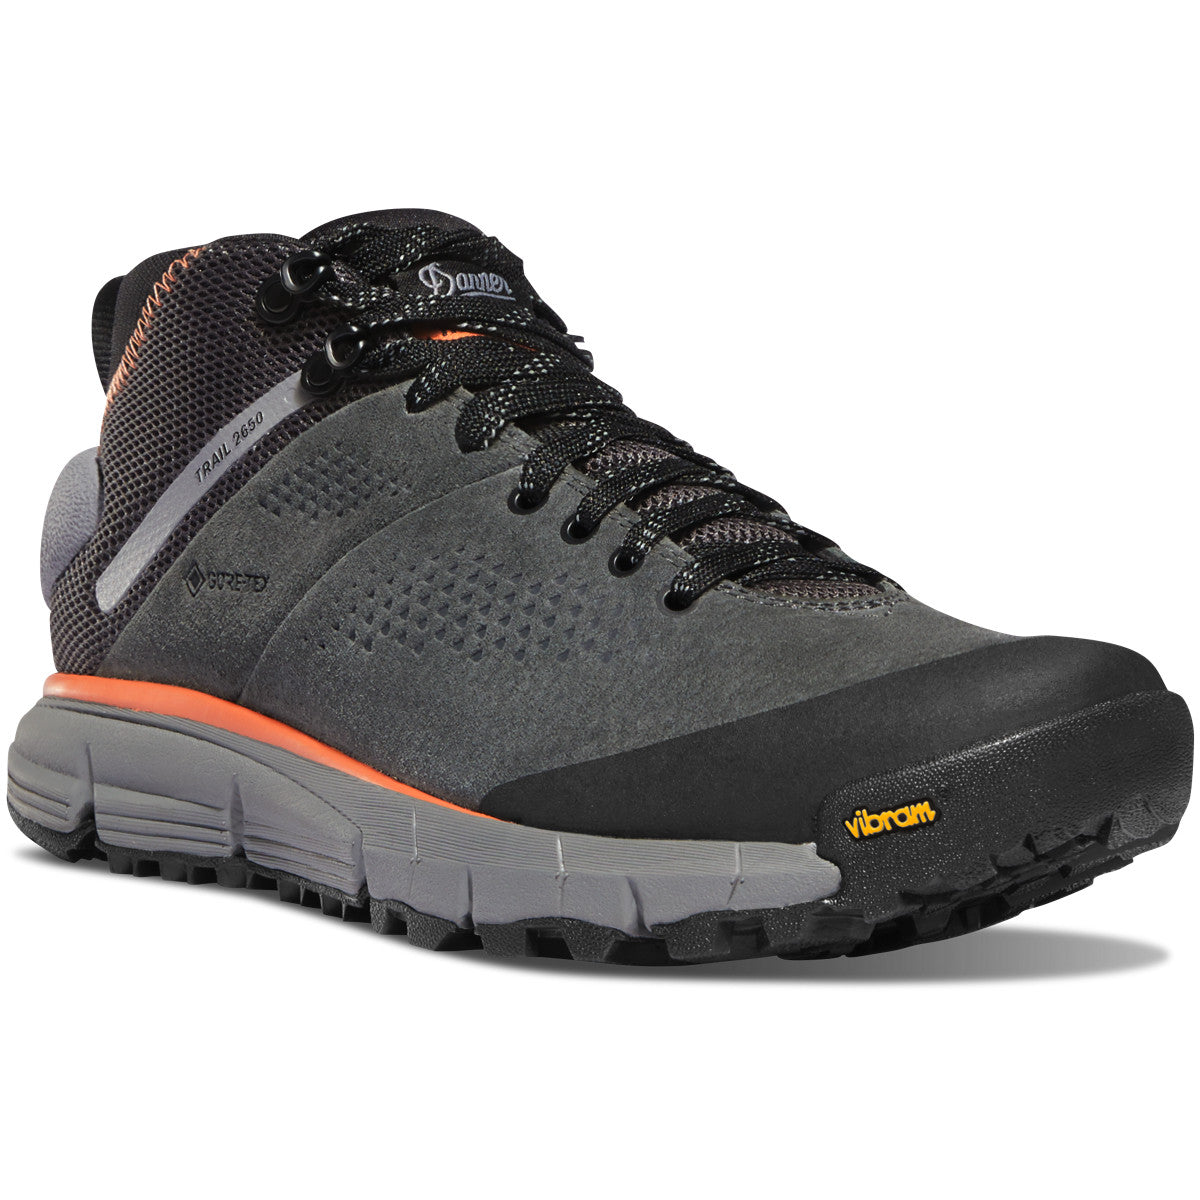 Trail 2650 Mid GTX - Women's